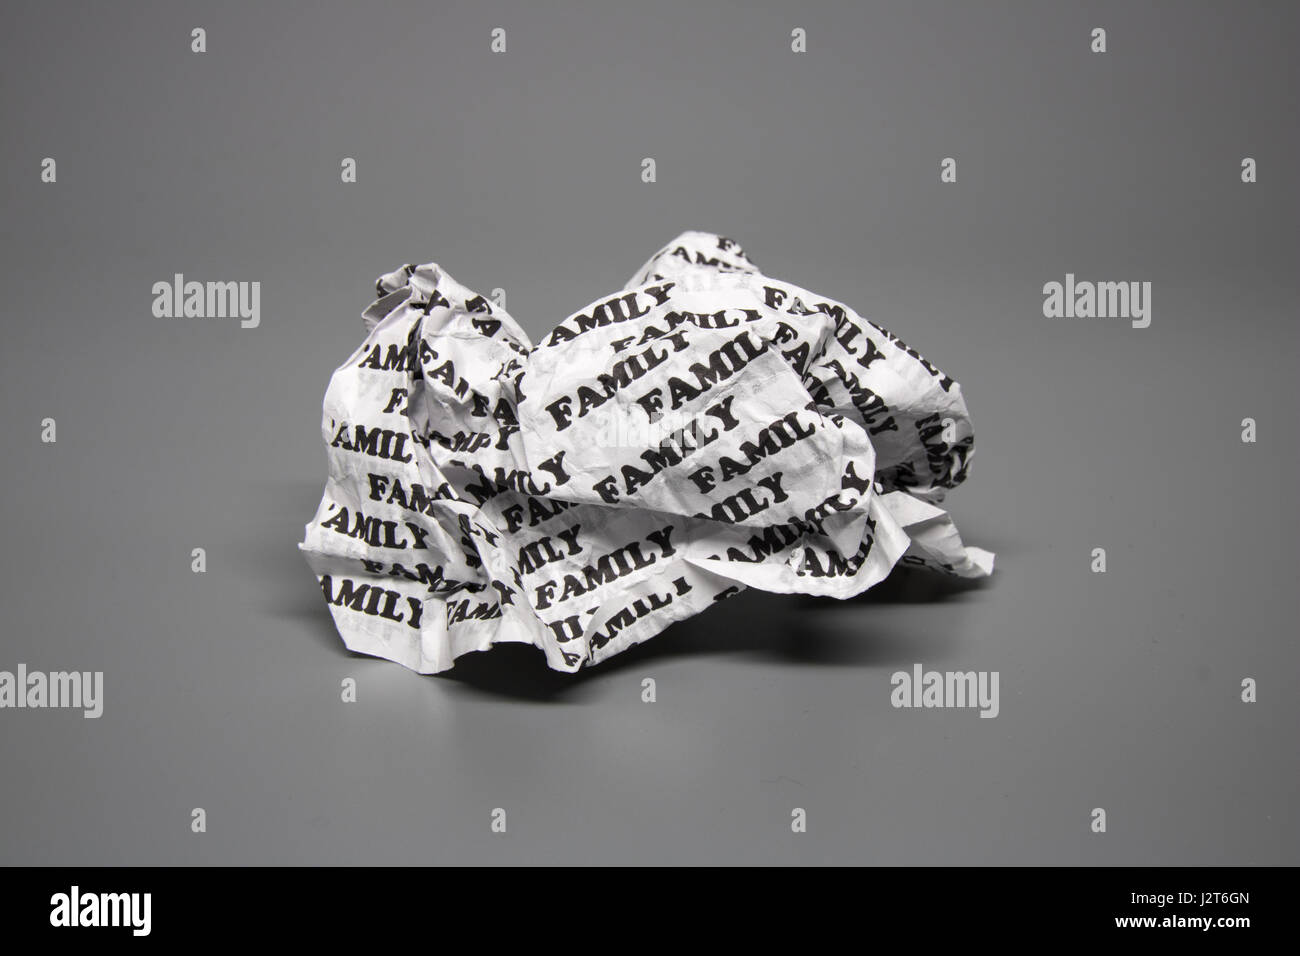 incest 3D bad onion 2 A crumpled paper with the words 'family' written all over it on a gray